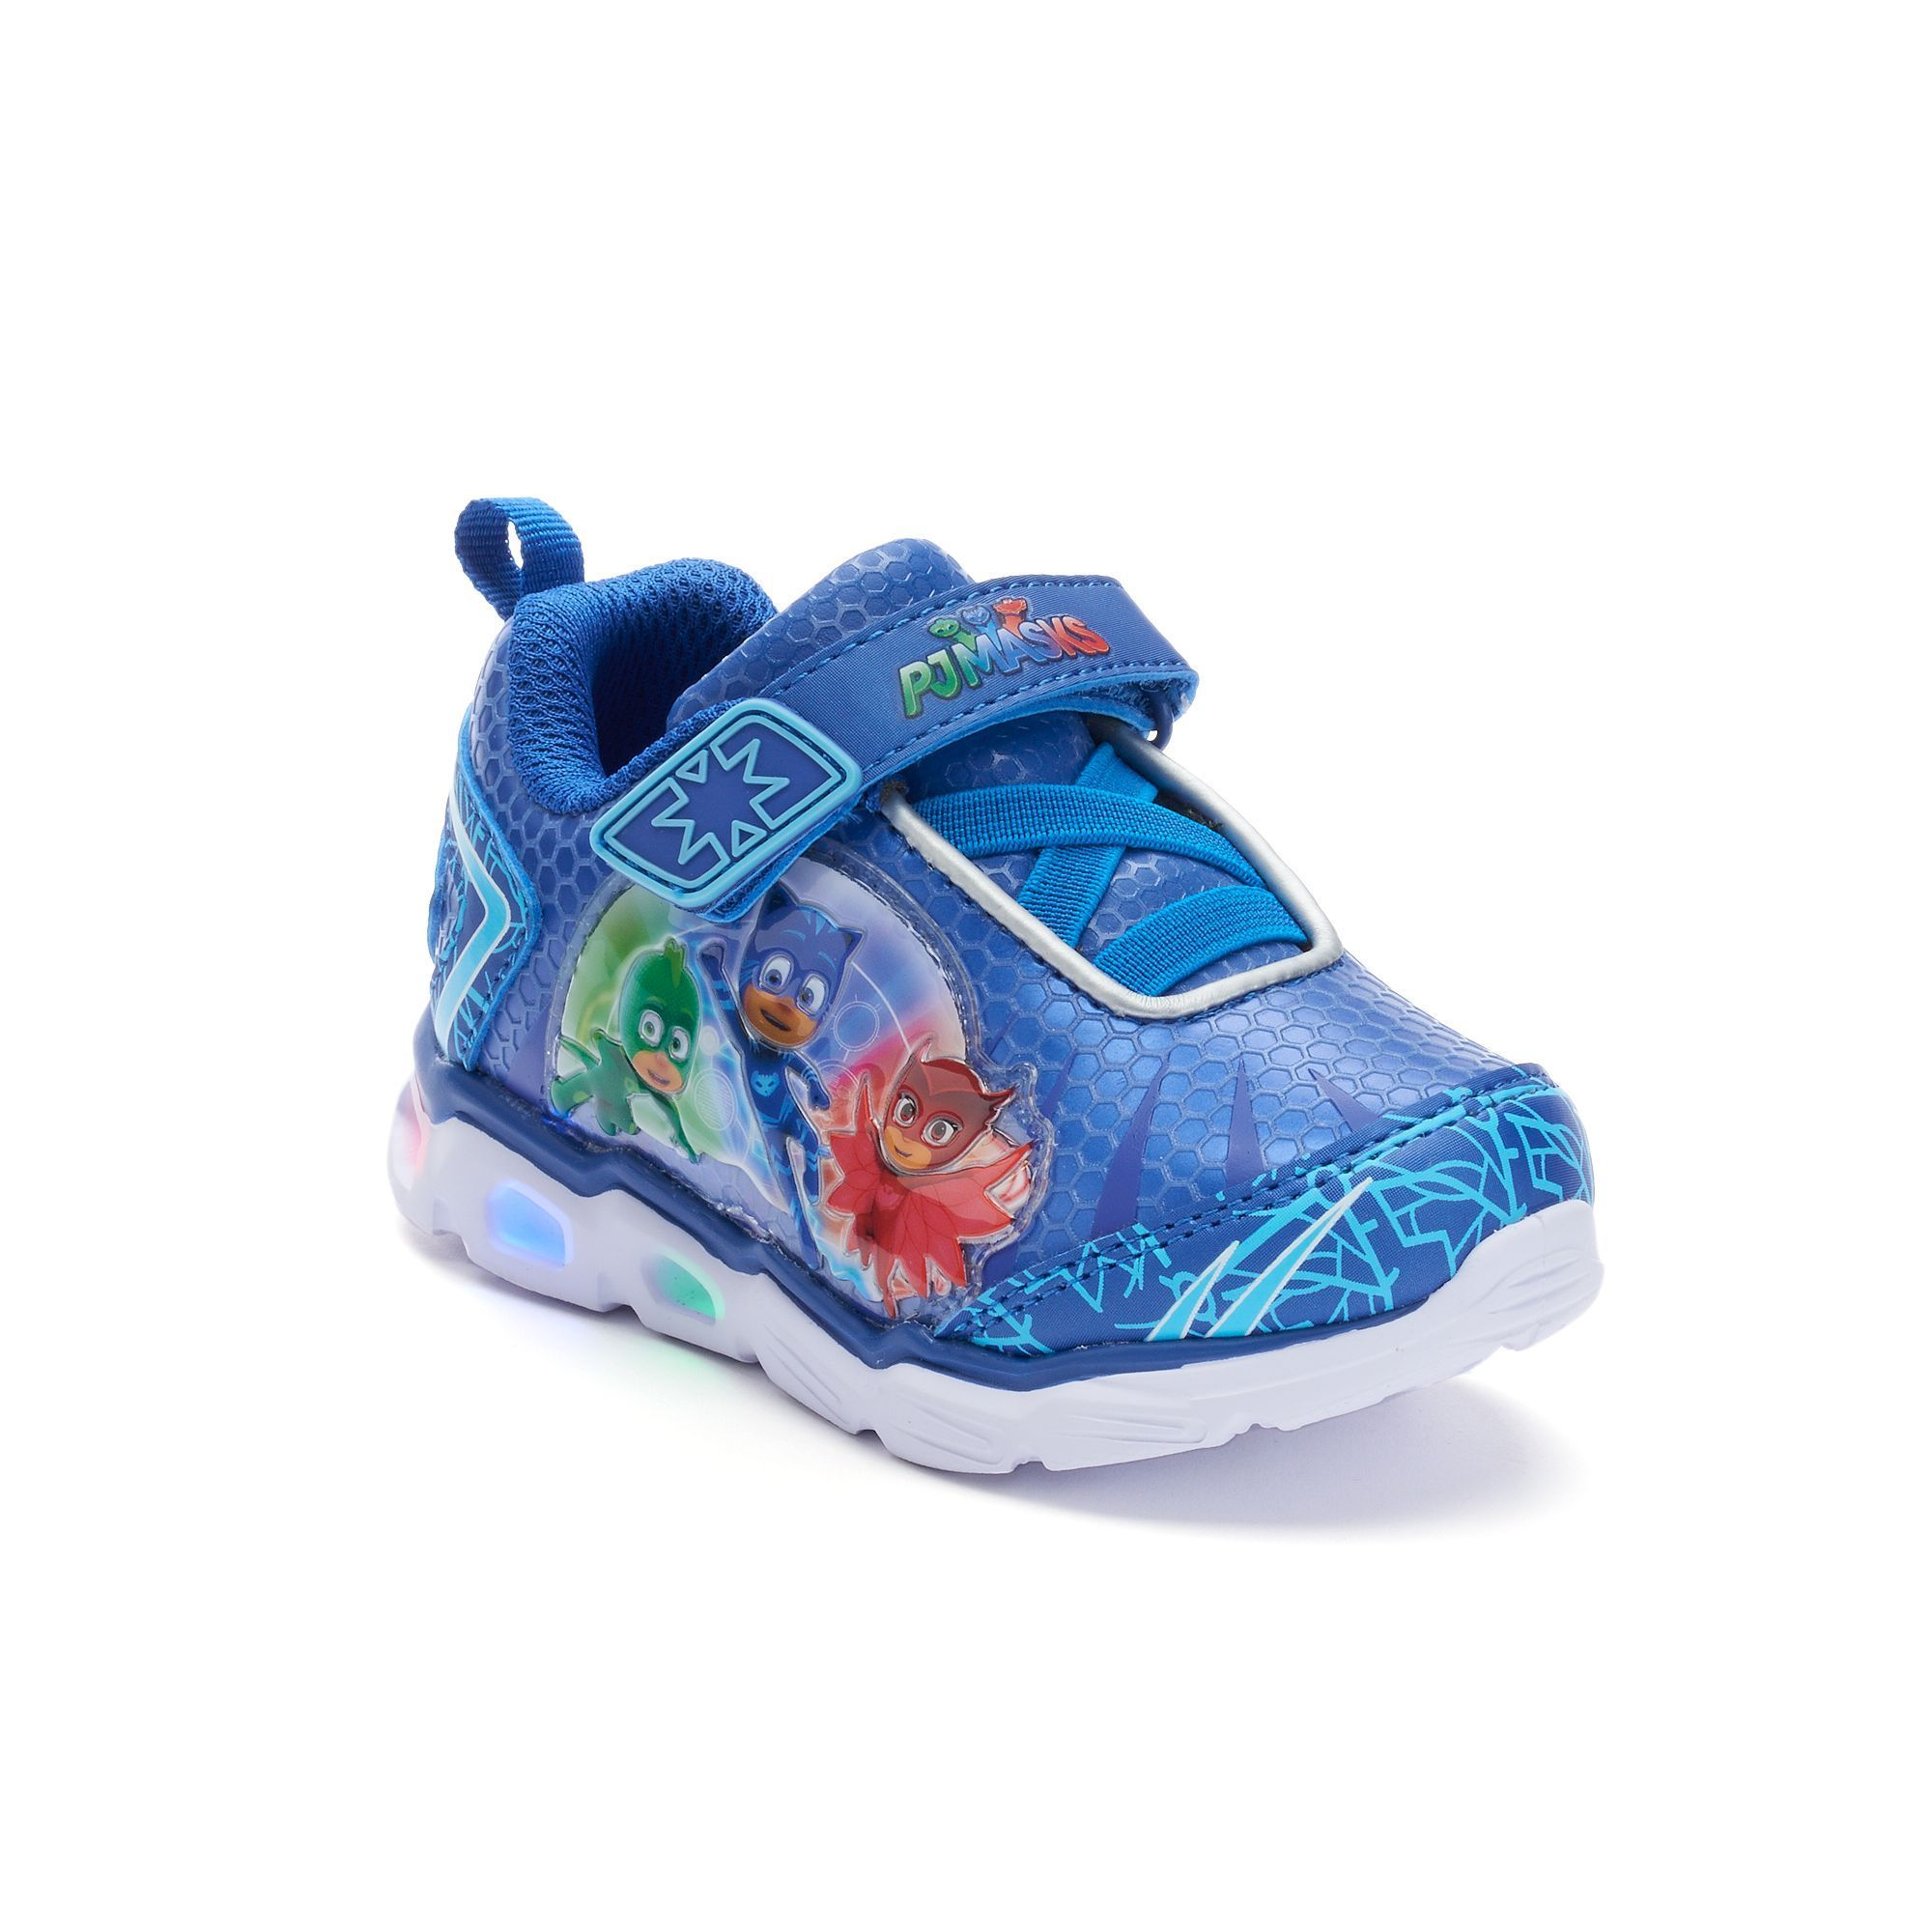 brand new b60d7 0db17 PJ Masks Toddler Boys  Light-Up Shoes, Boy s, Size  10 T, Blue Other